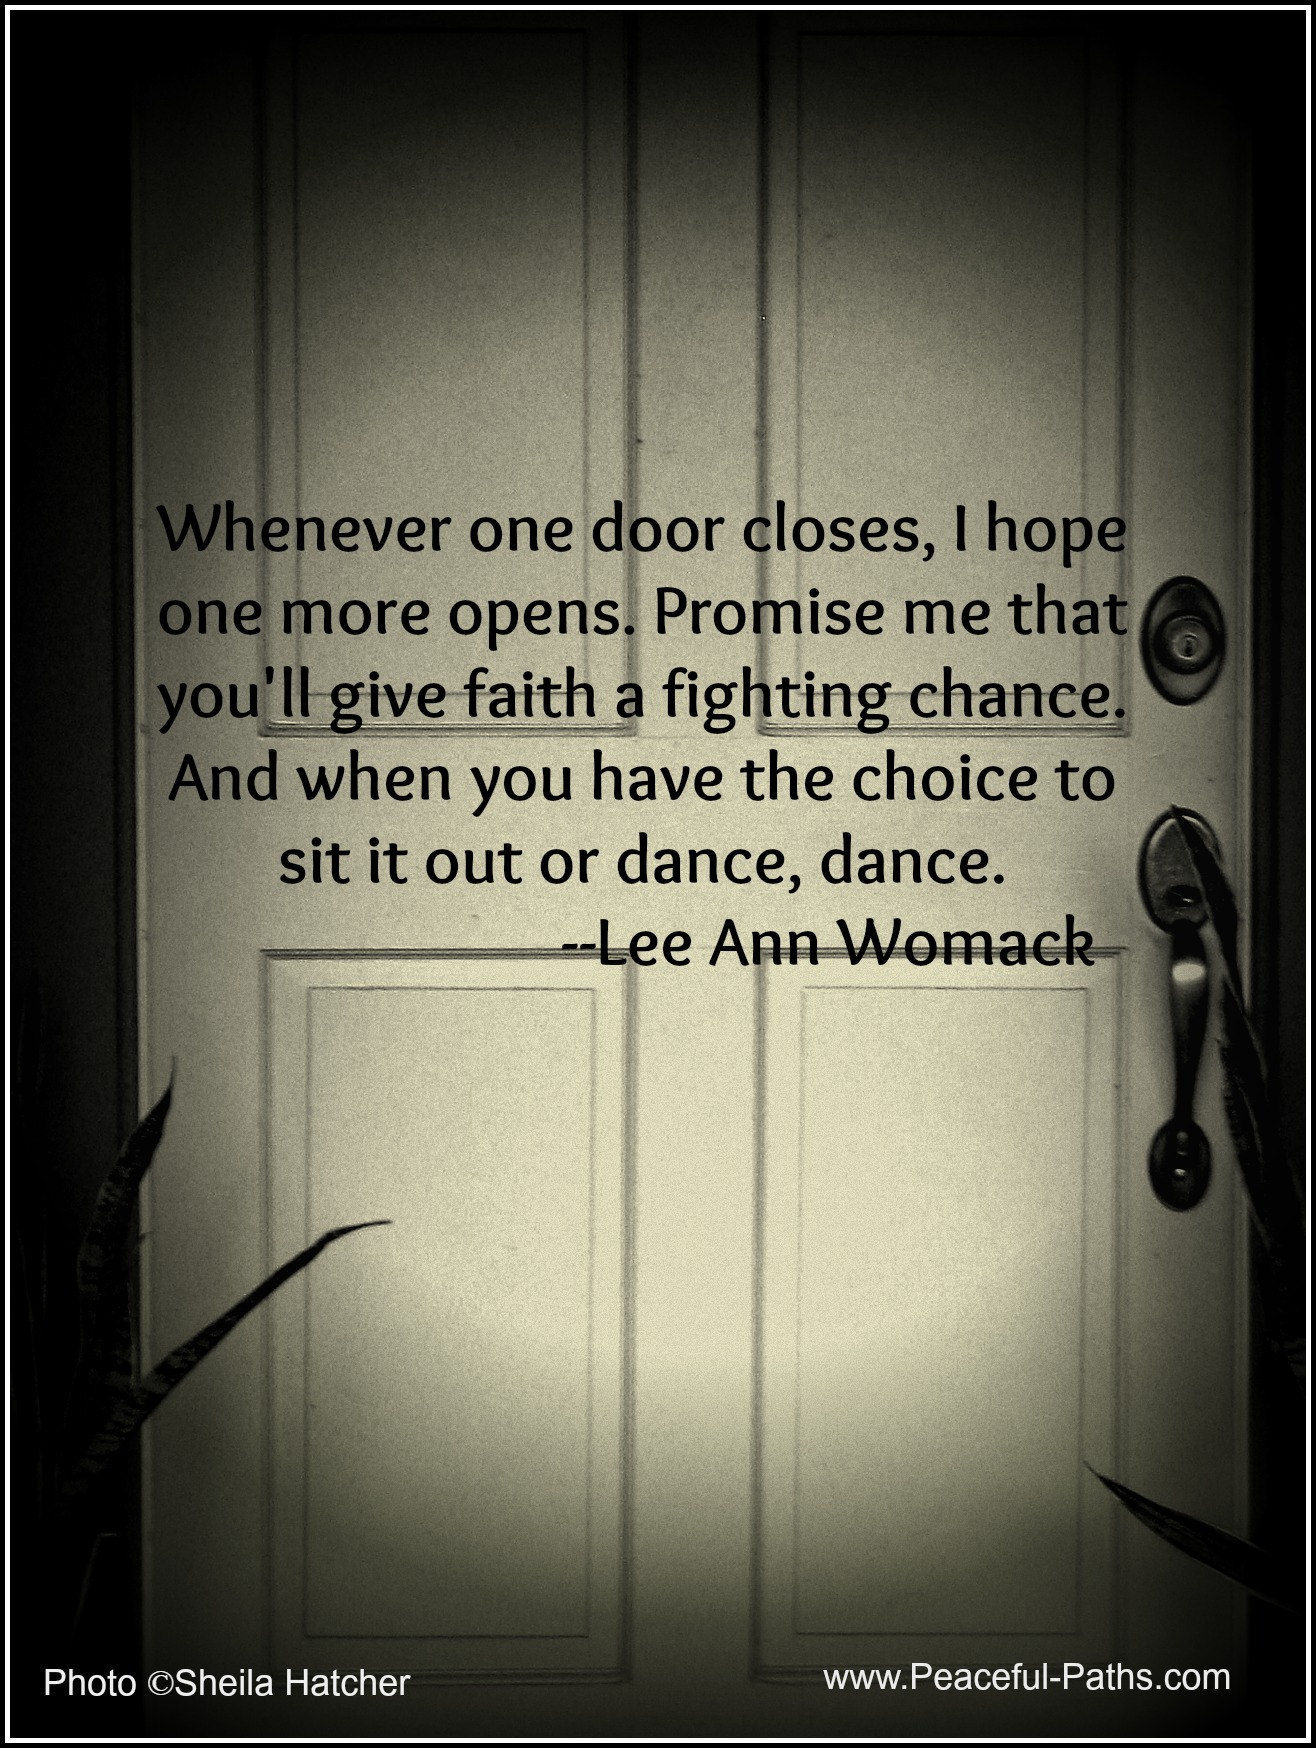 Whenever one door closes & Whenever one door closes I hope one more opens. |